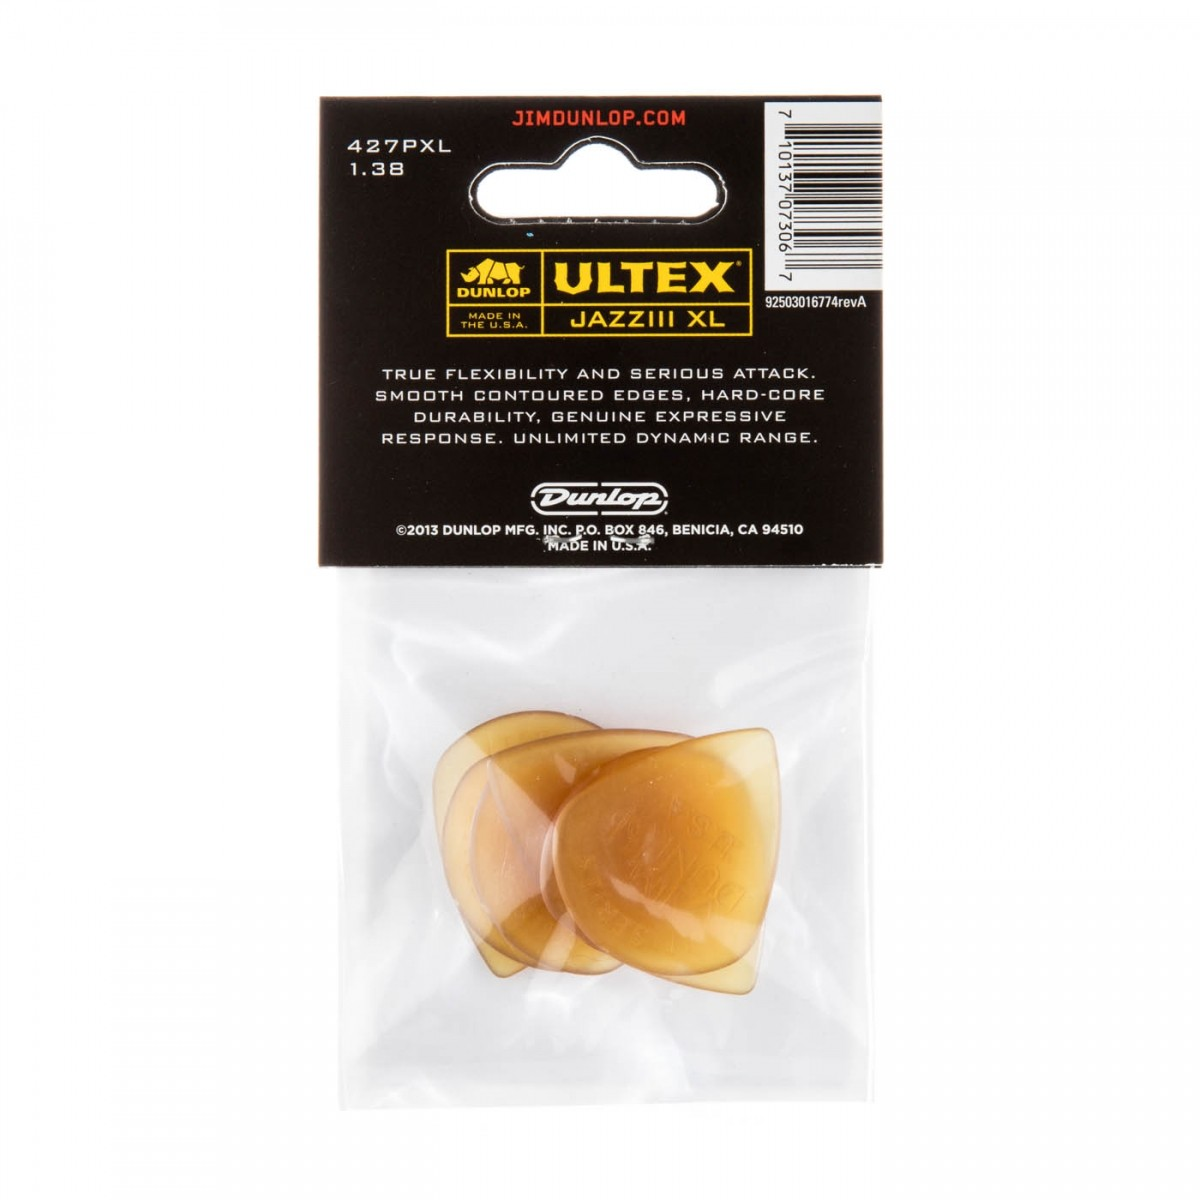 Palheta Ultex Jazz III XL 1.38 mm - kit com 6 palhetas- Dunlop